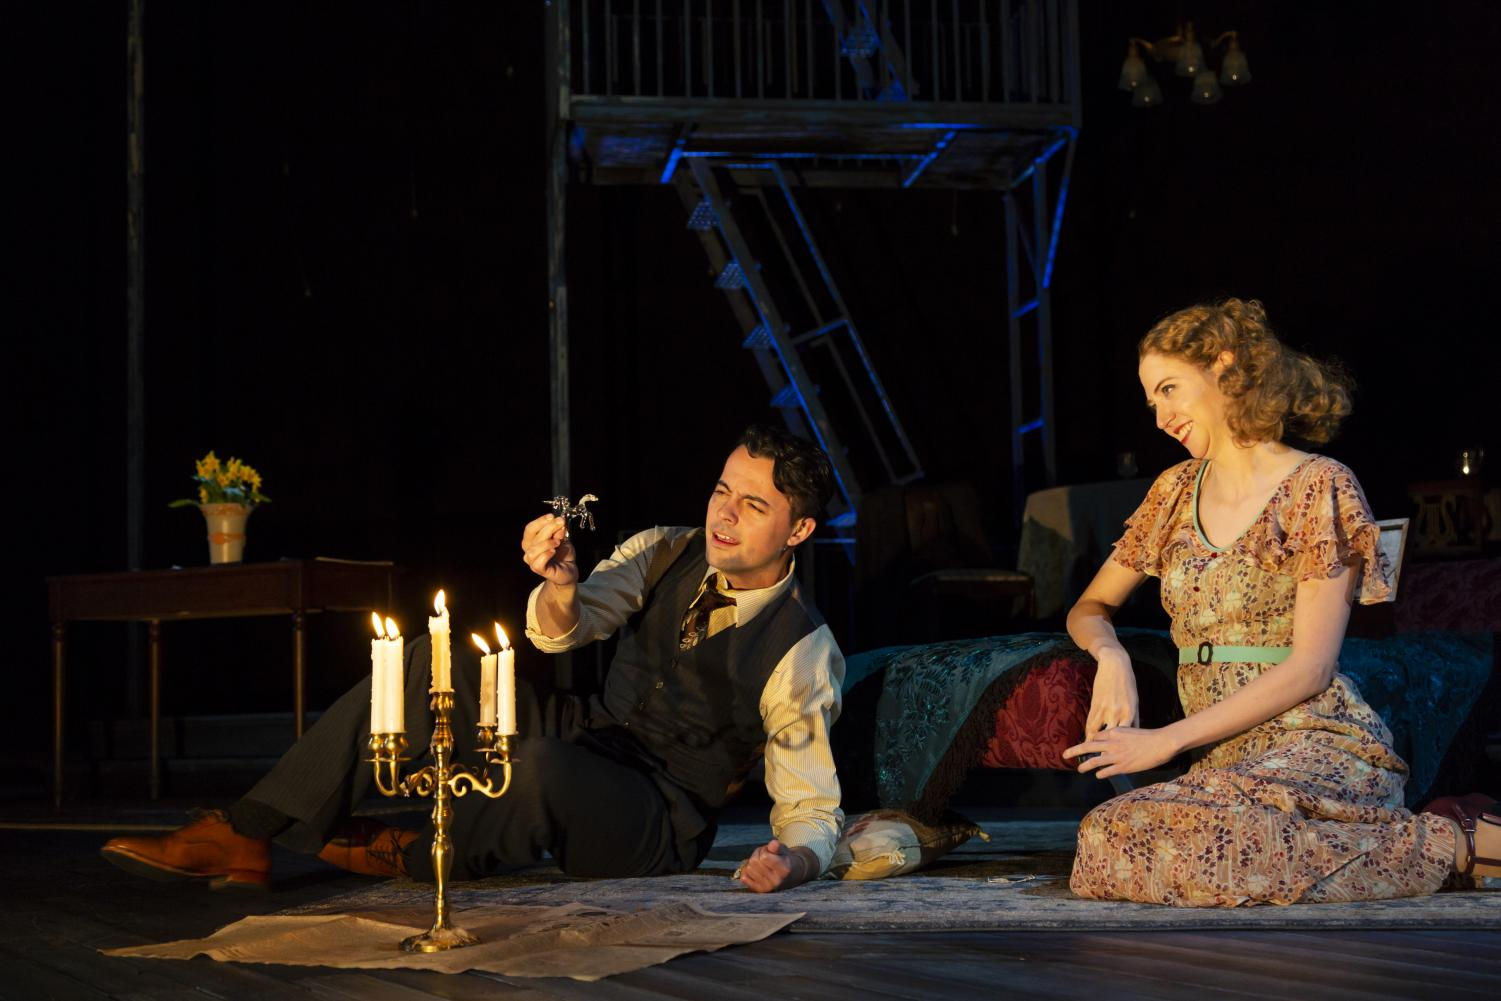 Jim (Grayson DeJesus) and Laura (Carey Cox) share an intimate scene by candlelight. Photo by T. Charles Erickson.